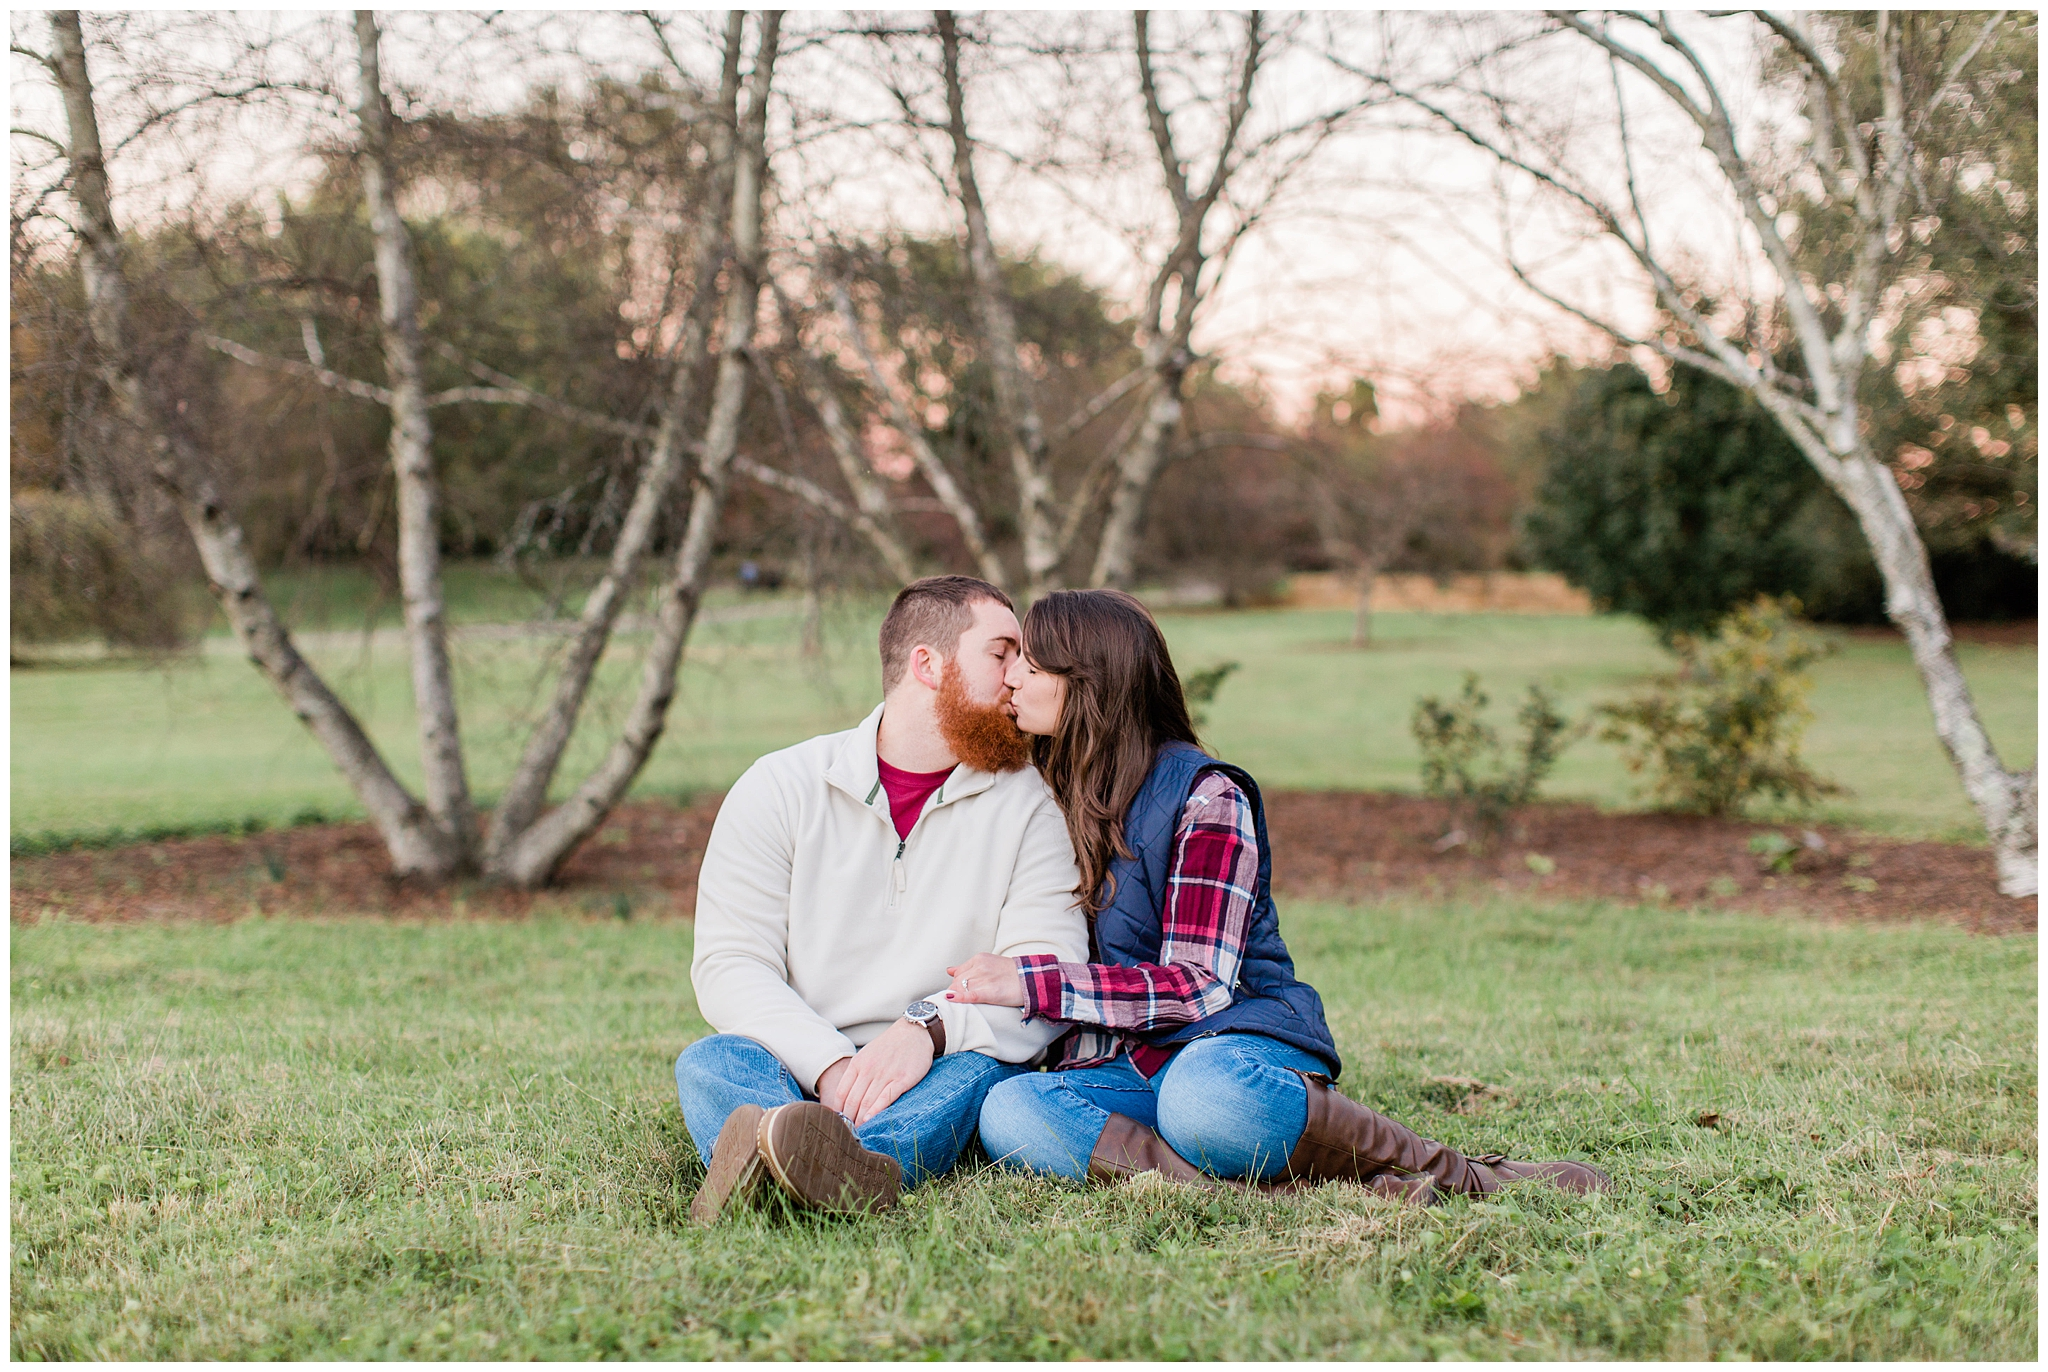 In my catching up from my 2018 weddings and engagements I'm getting to some fall engagmenets and although I am in no hurry for fall to be here just yet, this sweet session reminds me why I love fall. These two will be getting married later this year, in the fall. I hope you all enjoy their session and the beautiful golden light in the garden.